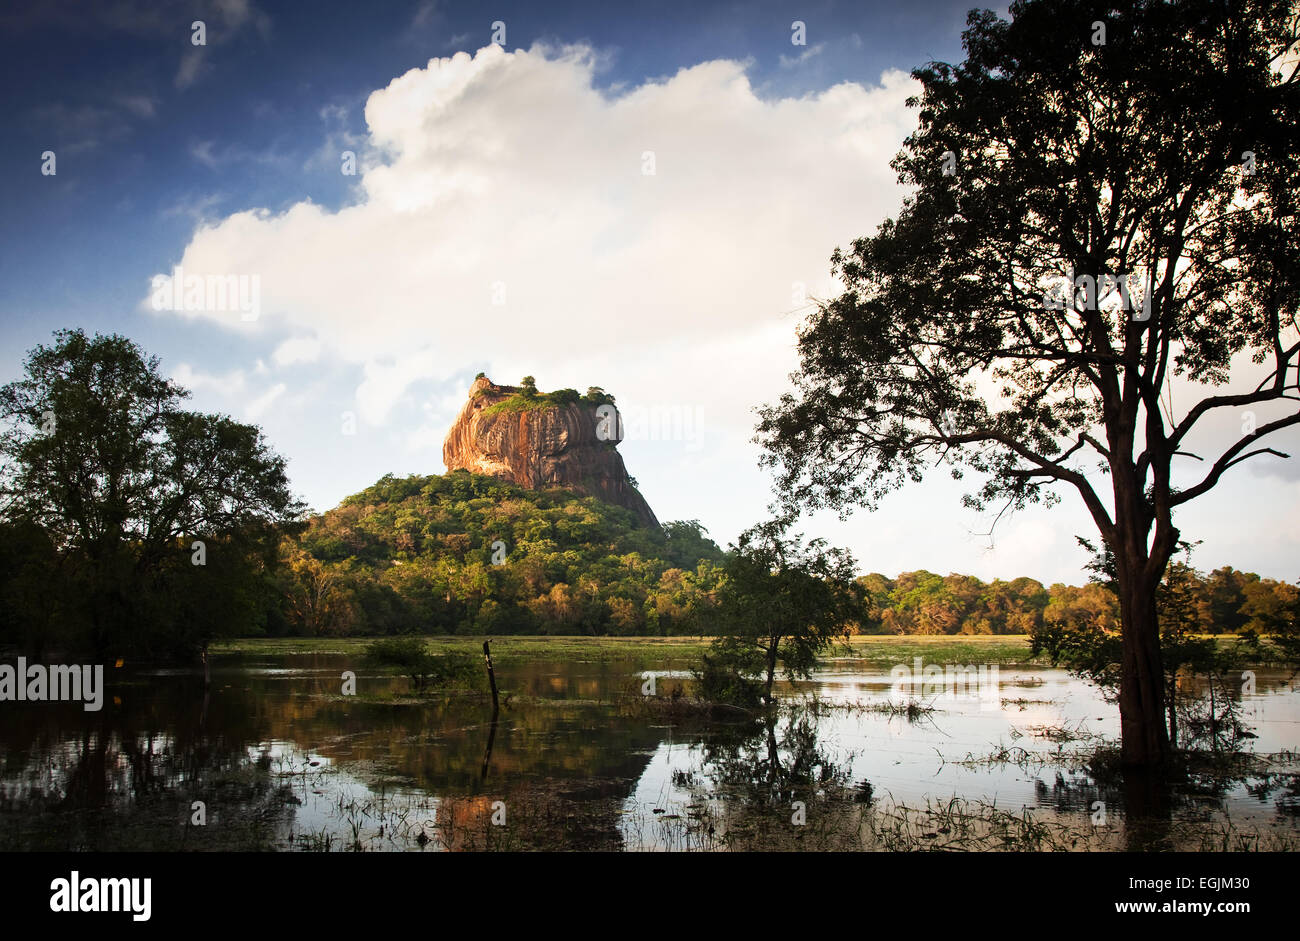 Sigiriya Lion Rock Fortress in Sri Lanka - Stock Image